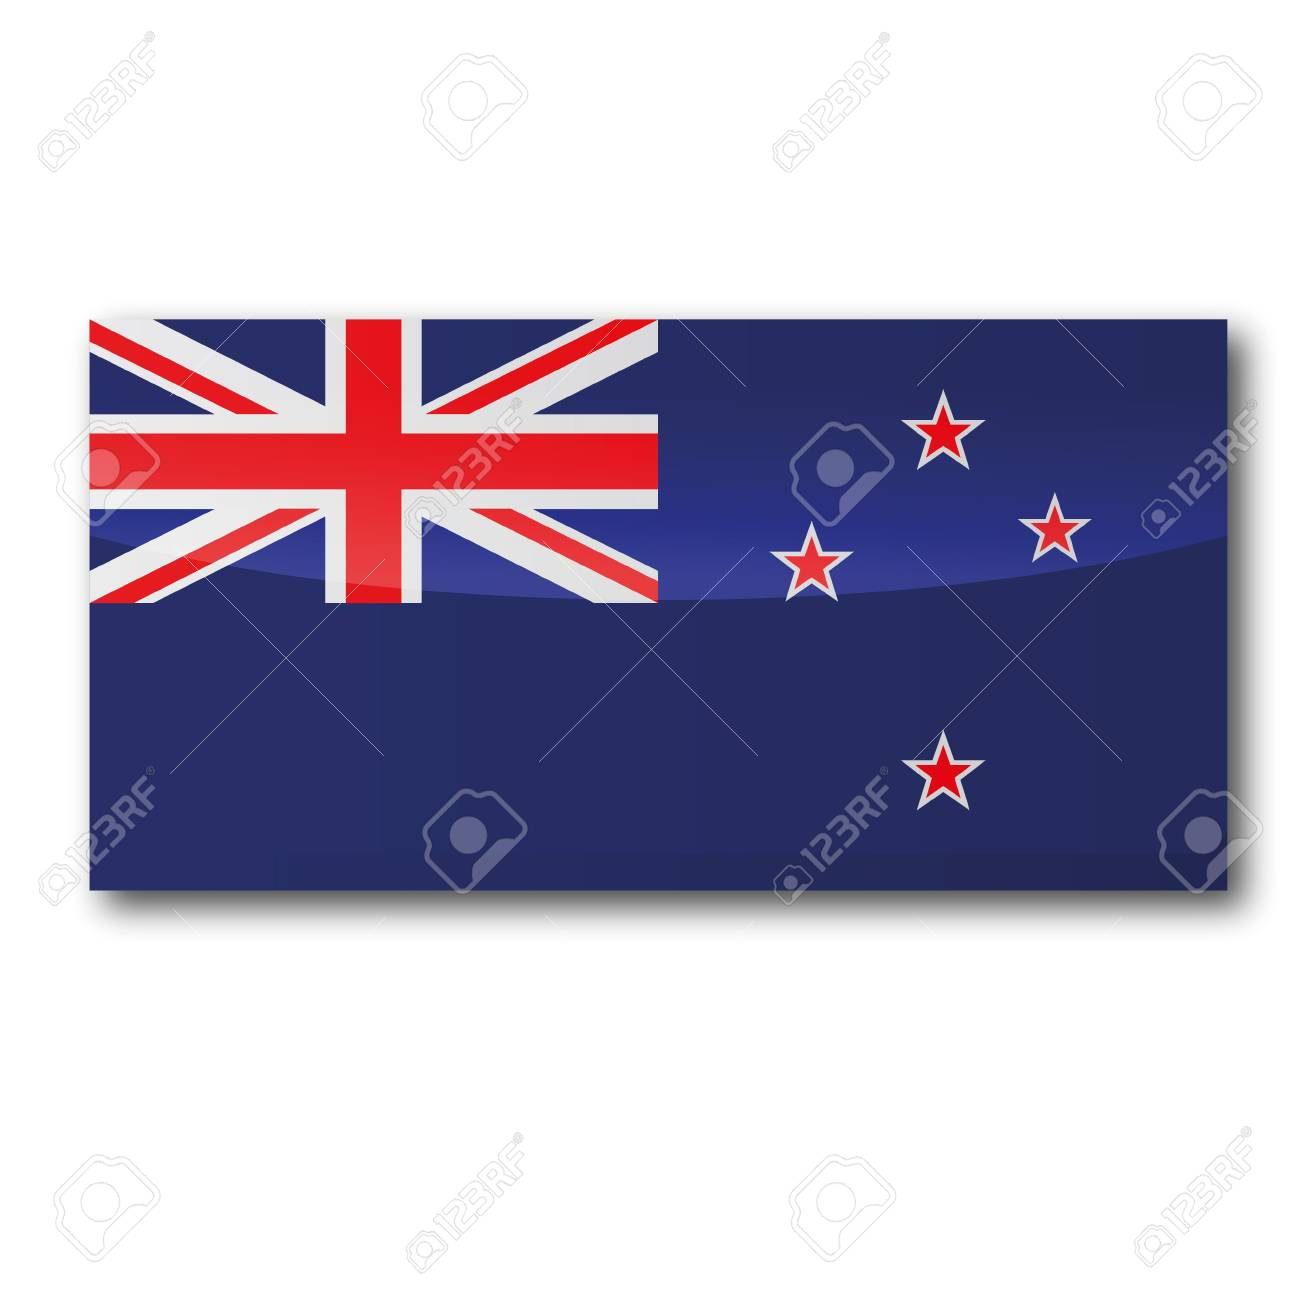 Flag New Zealand Stock Vector - 15993161